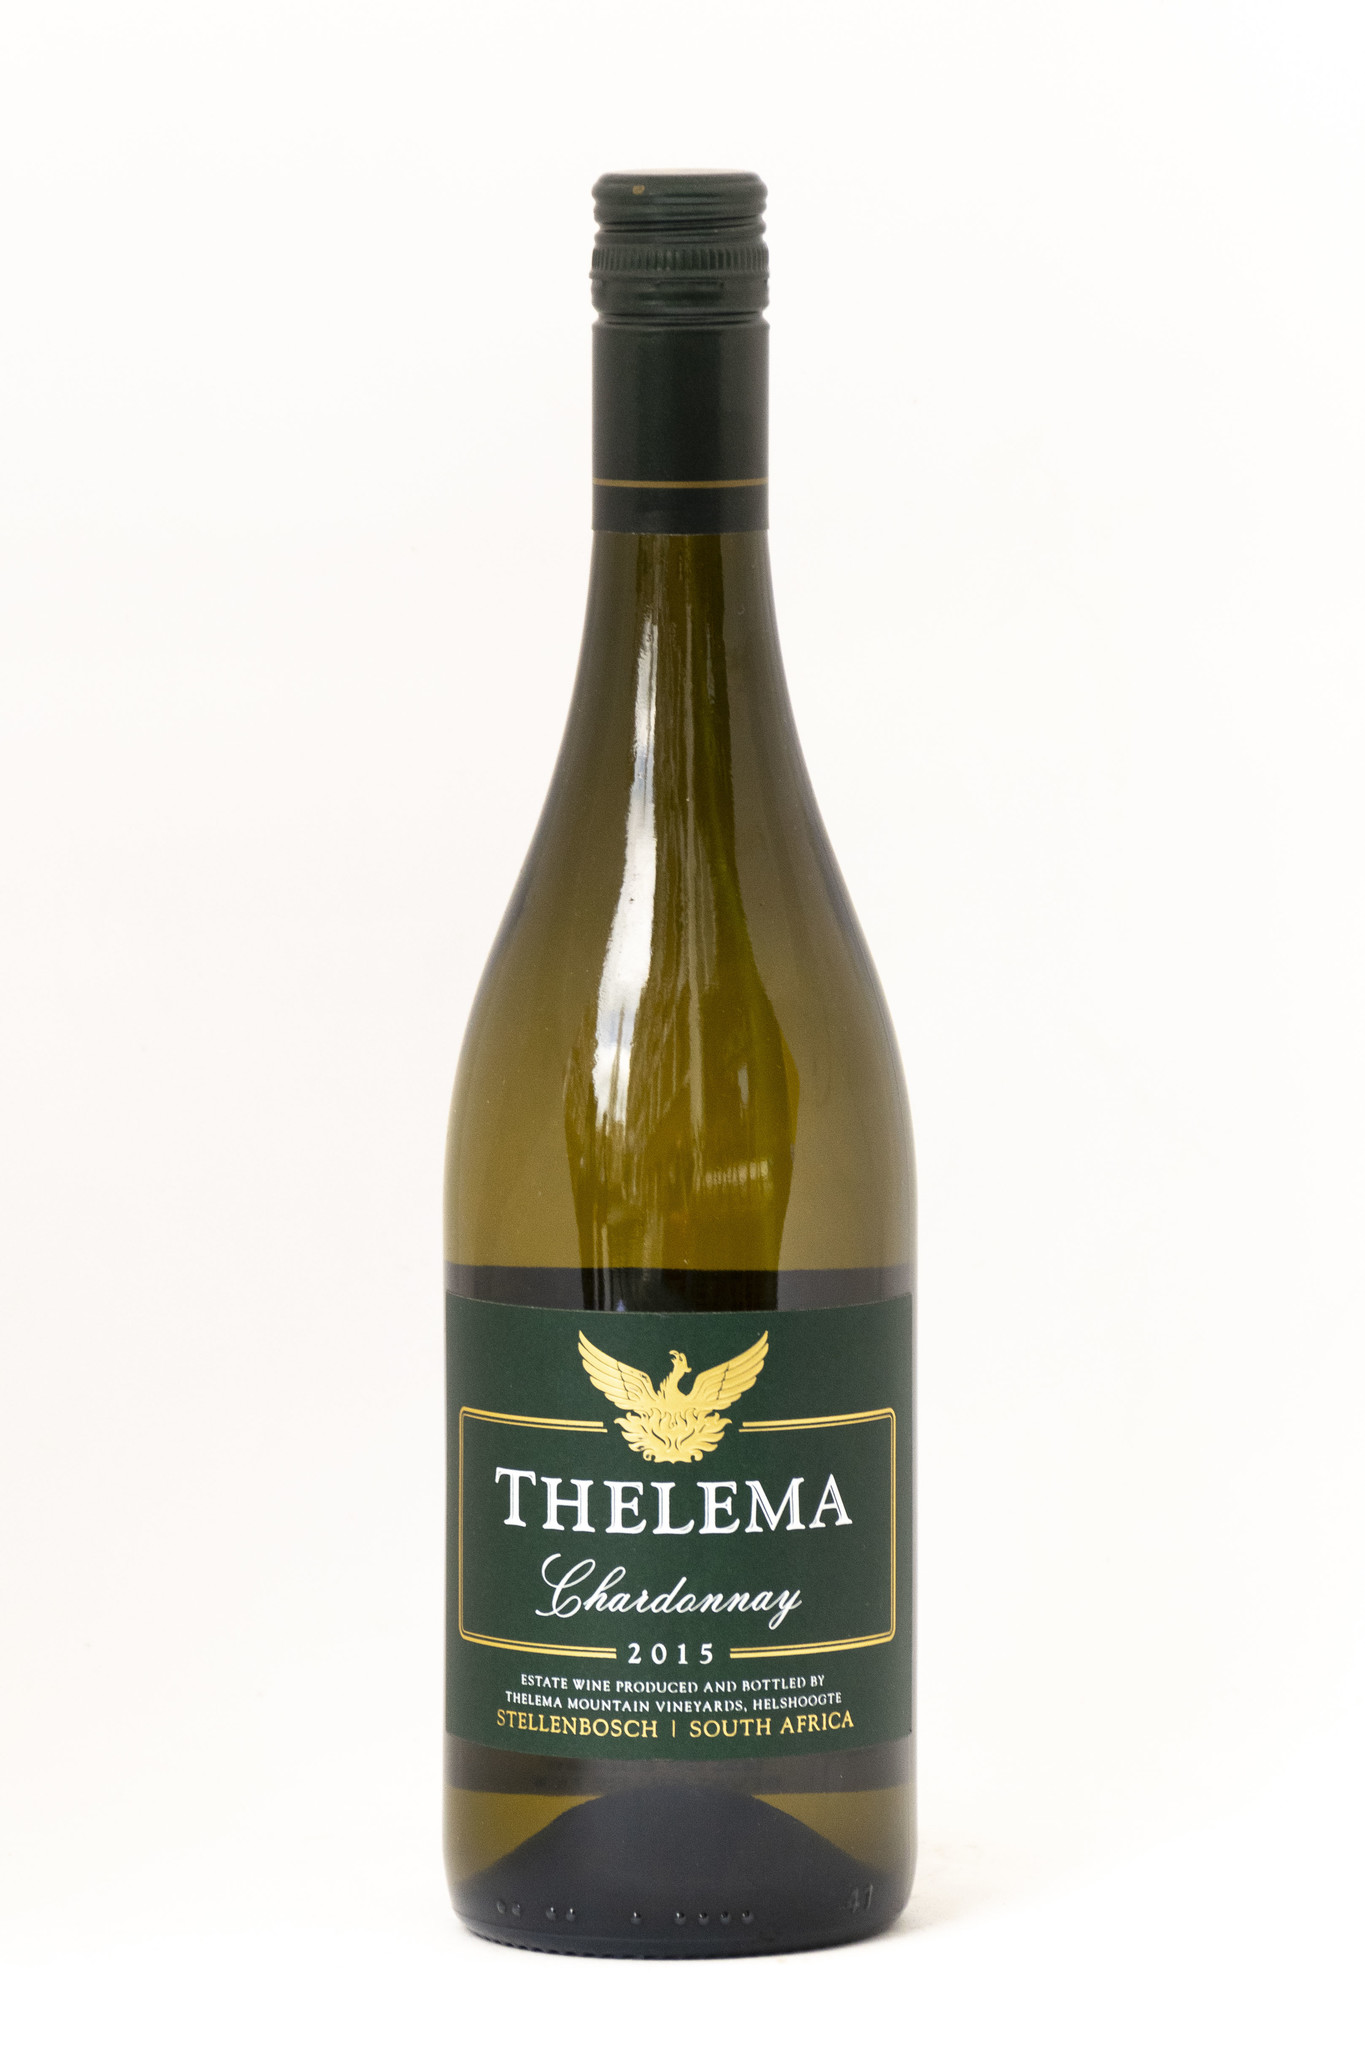 Thelema White | Thelema Vineyards| 2017 |Chardonnay